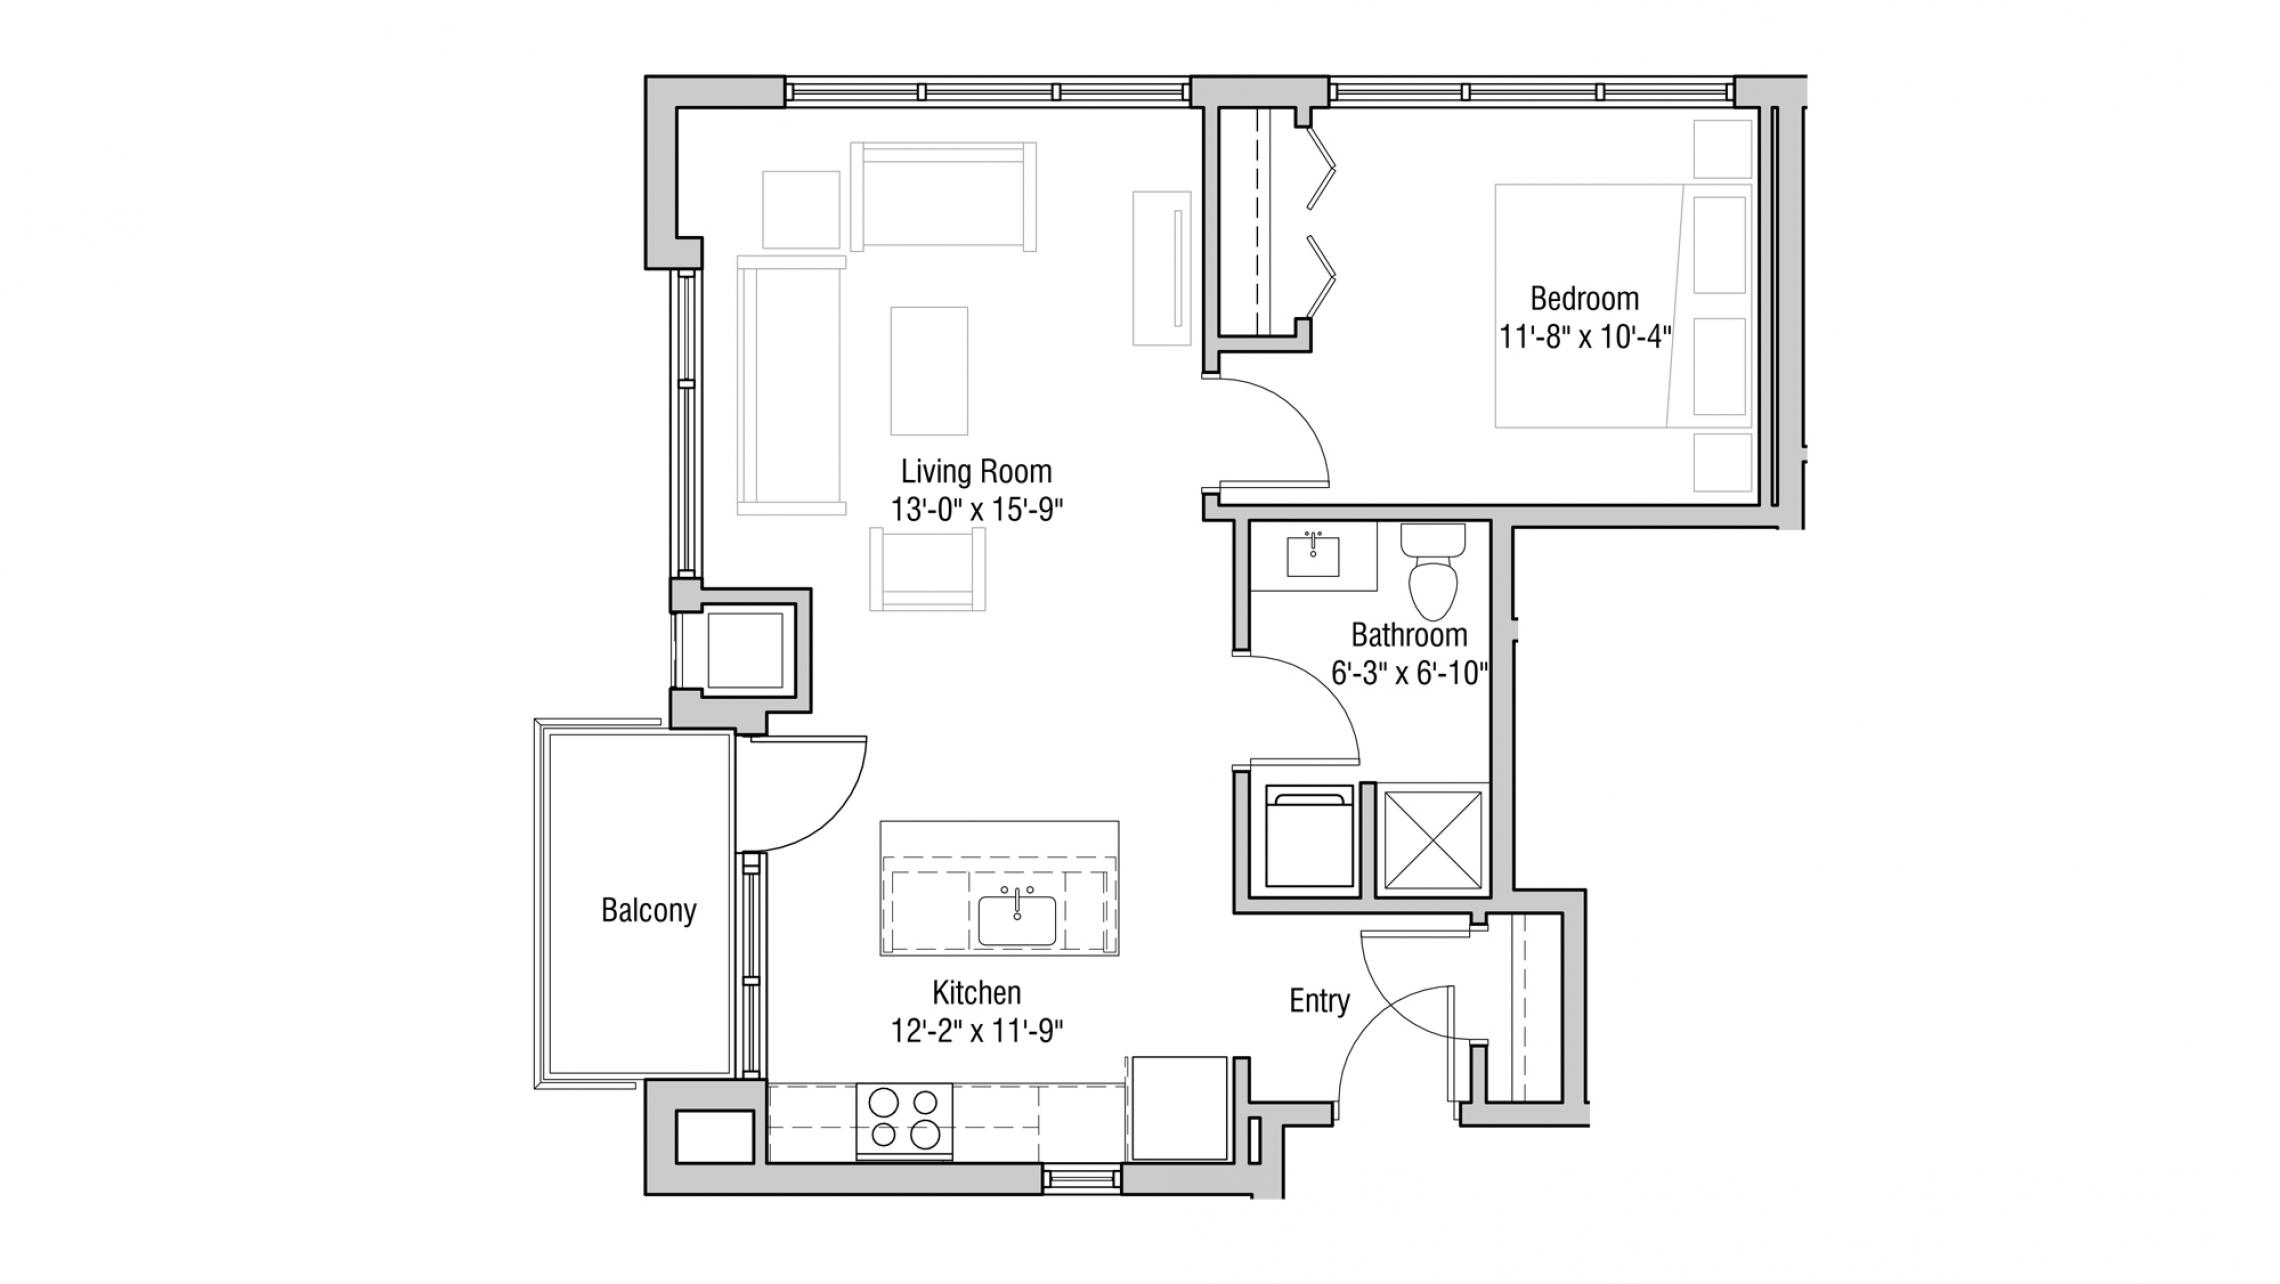 ULI Quarter Row 327 - One Bedroom, One Bathroom